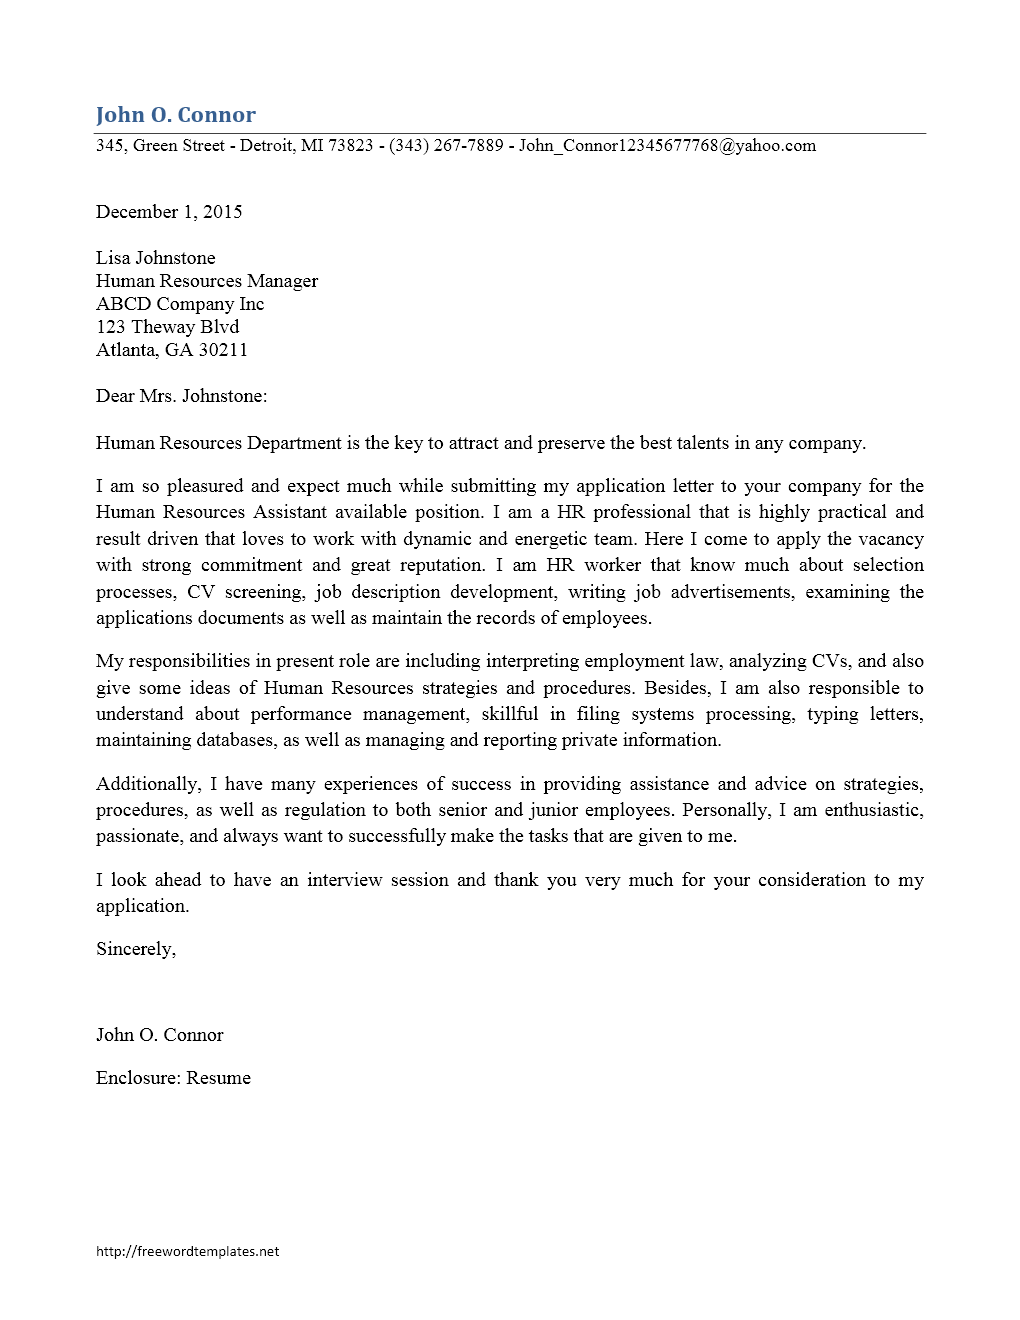 cover letter for human resource coordinator - human resources staff cover letter